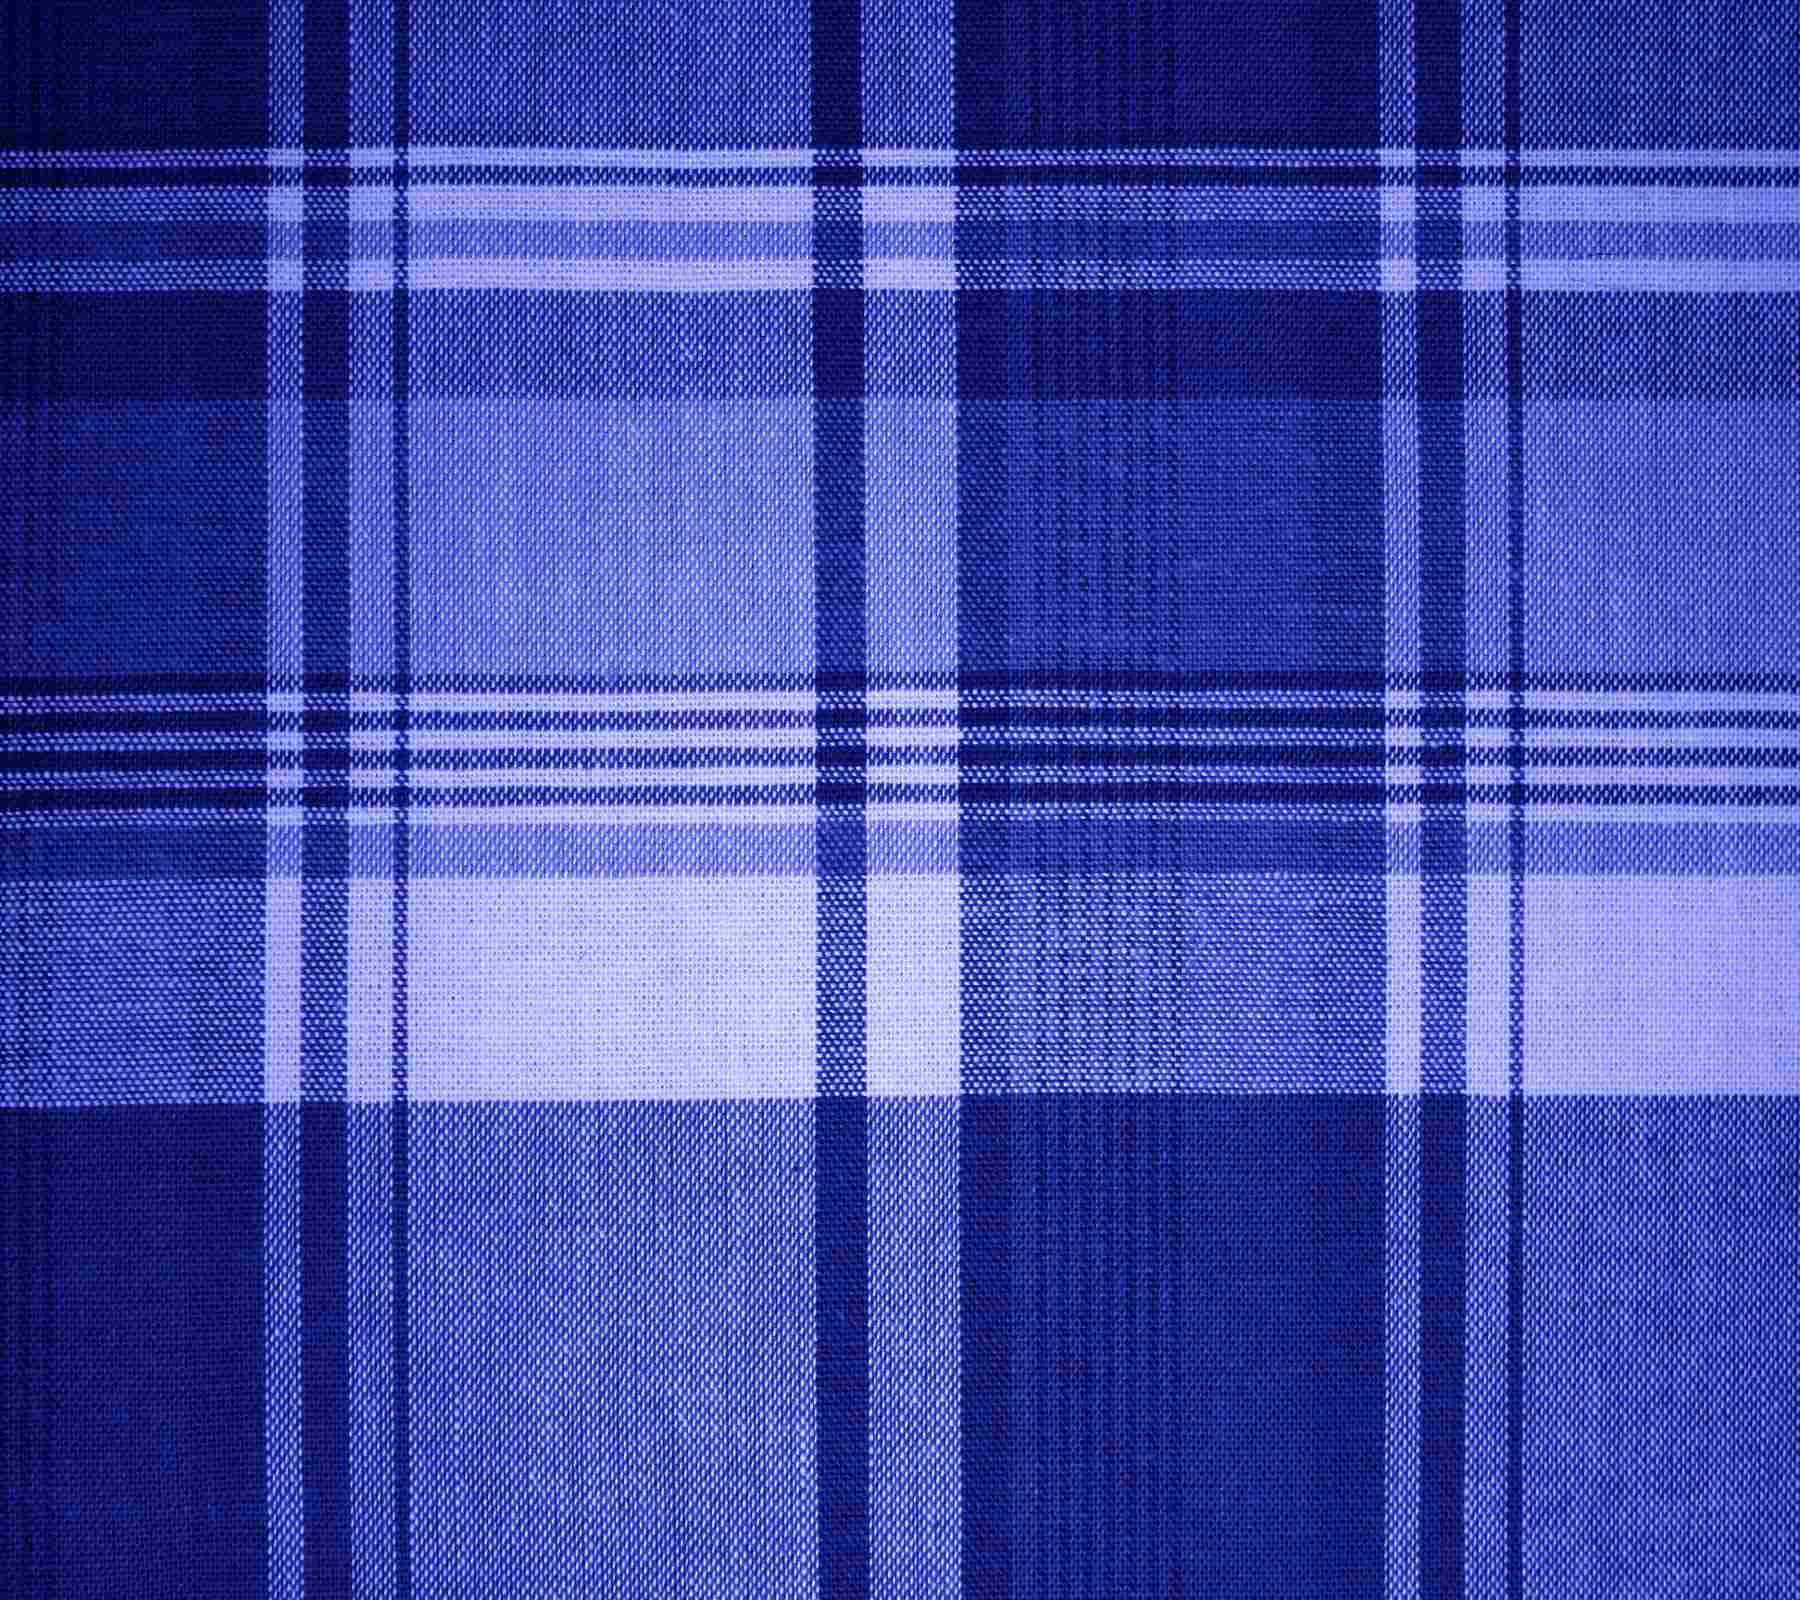 blue plaid fabric background 1800x1600 background image wallpaper or texture free for any web. Black Bedroom Furniture Sets. Home Design Ideas